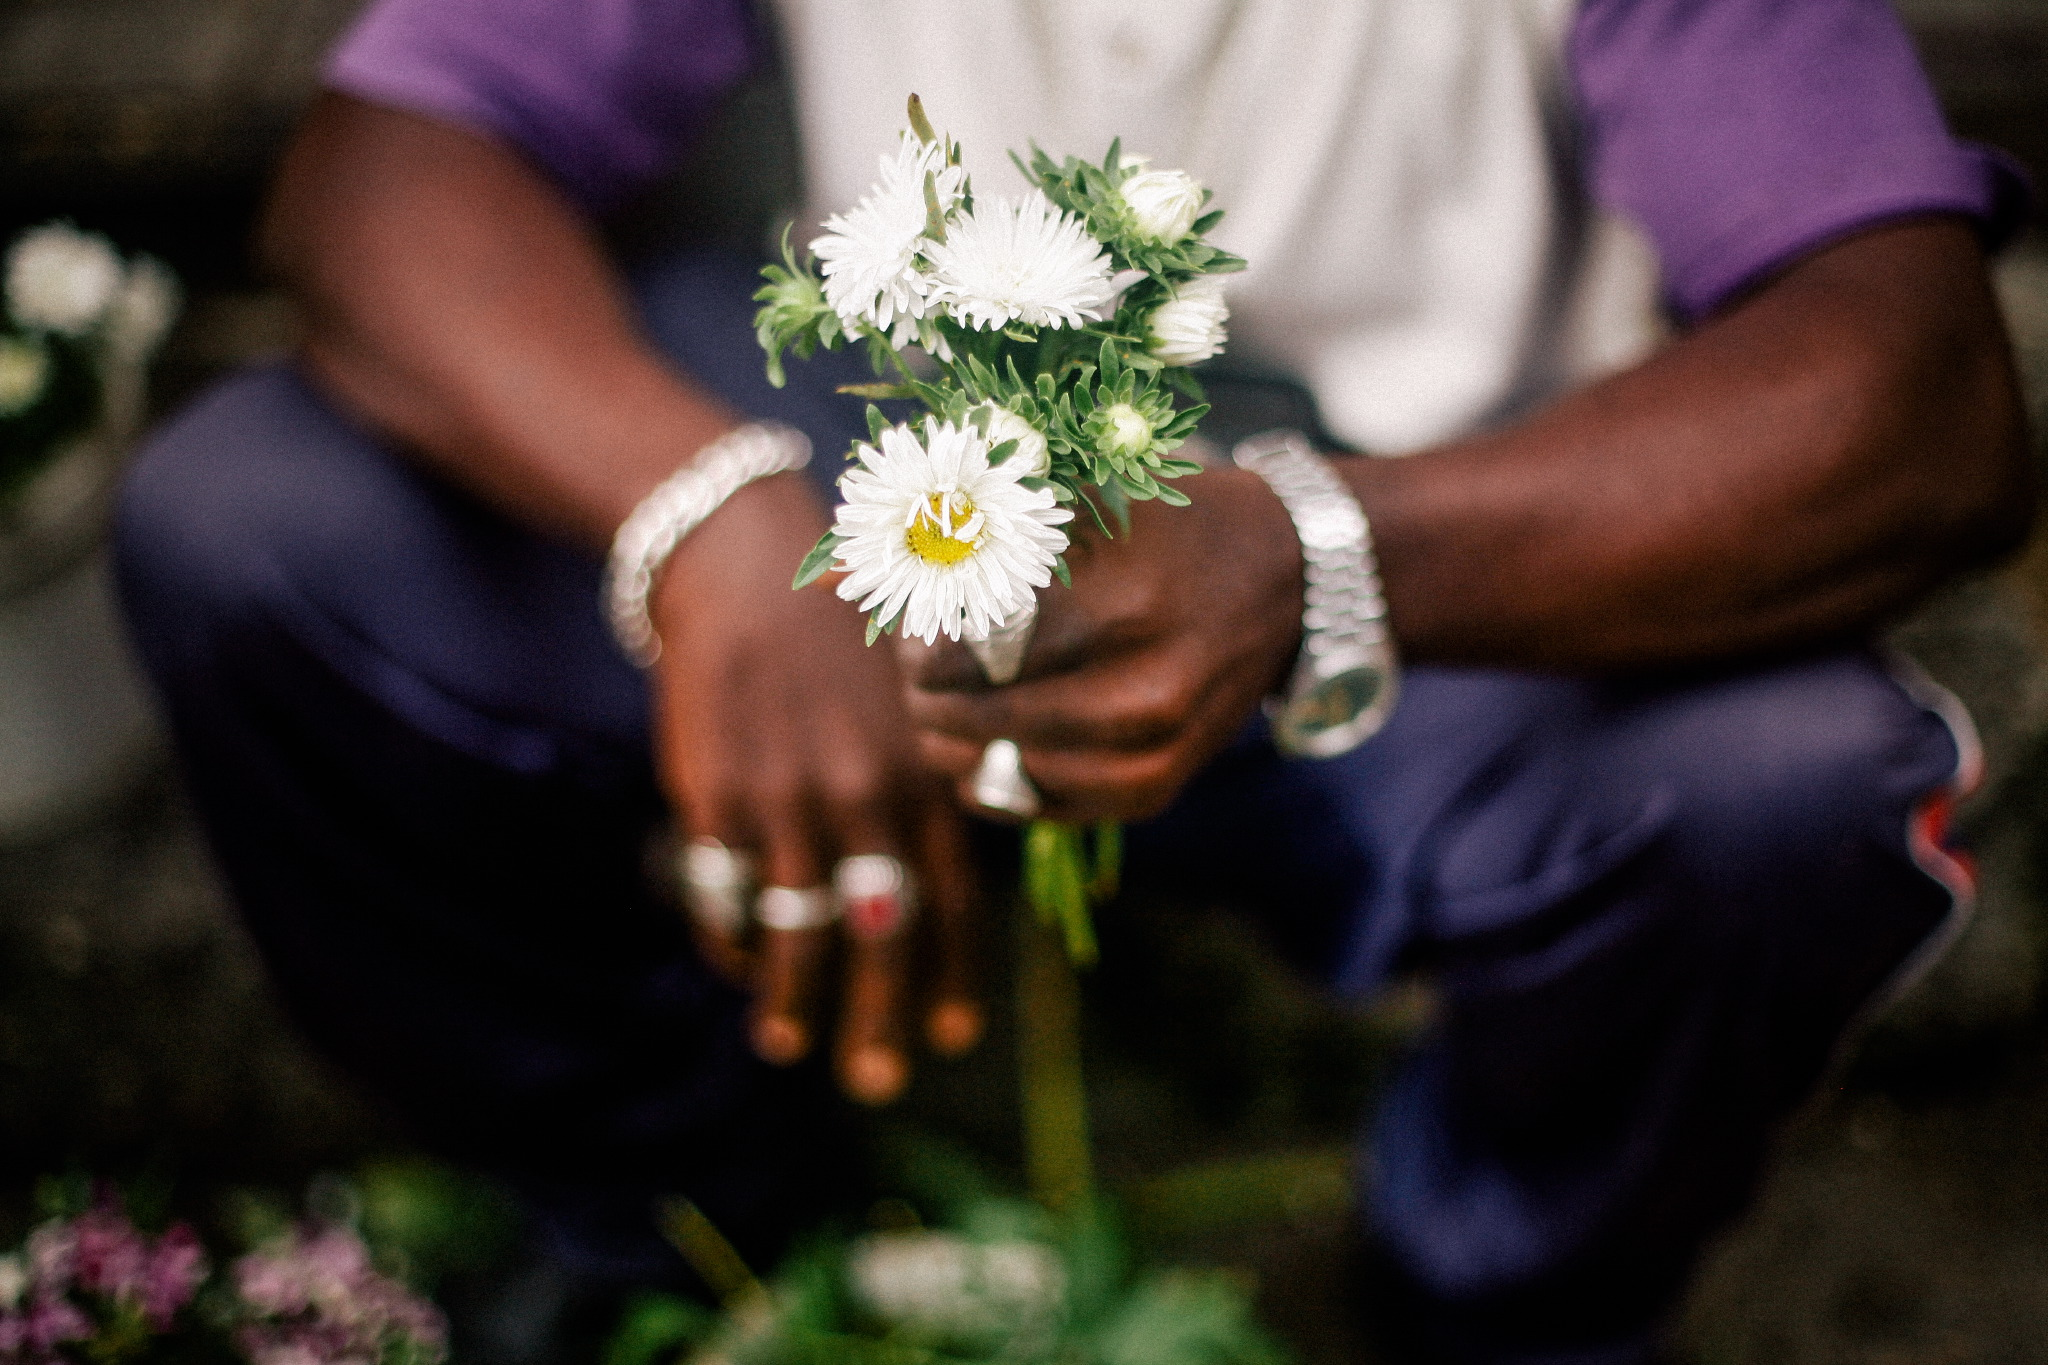 san diego wedding   photographer | person in purple clothing holding bunch of white flowers